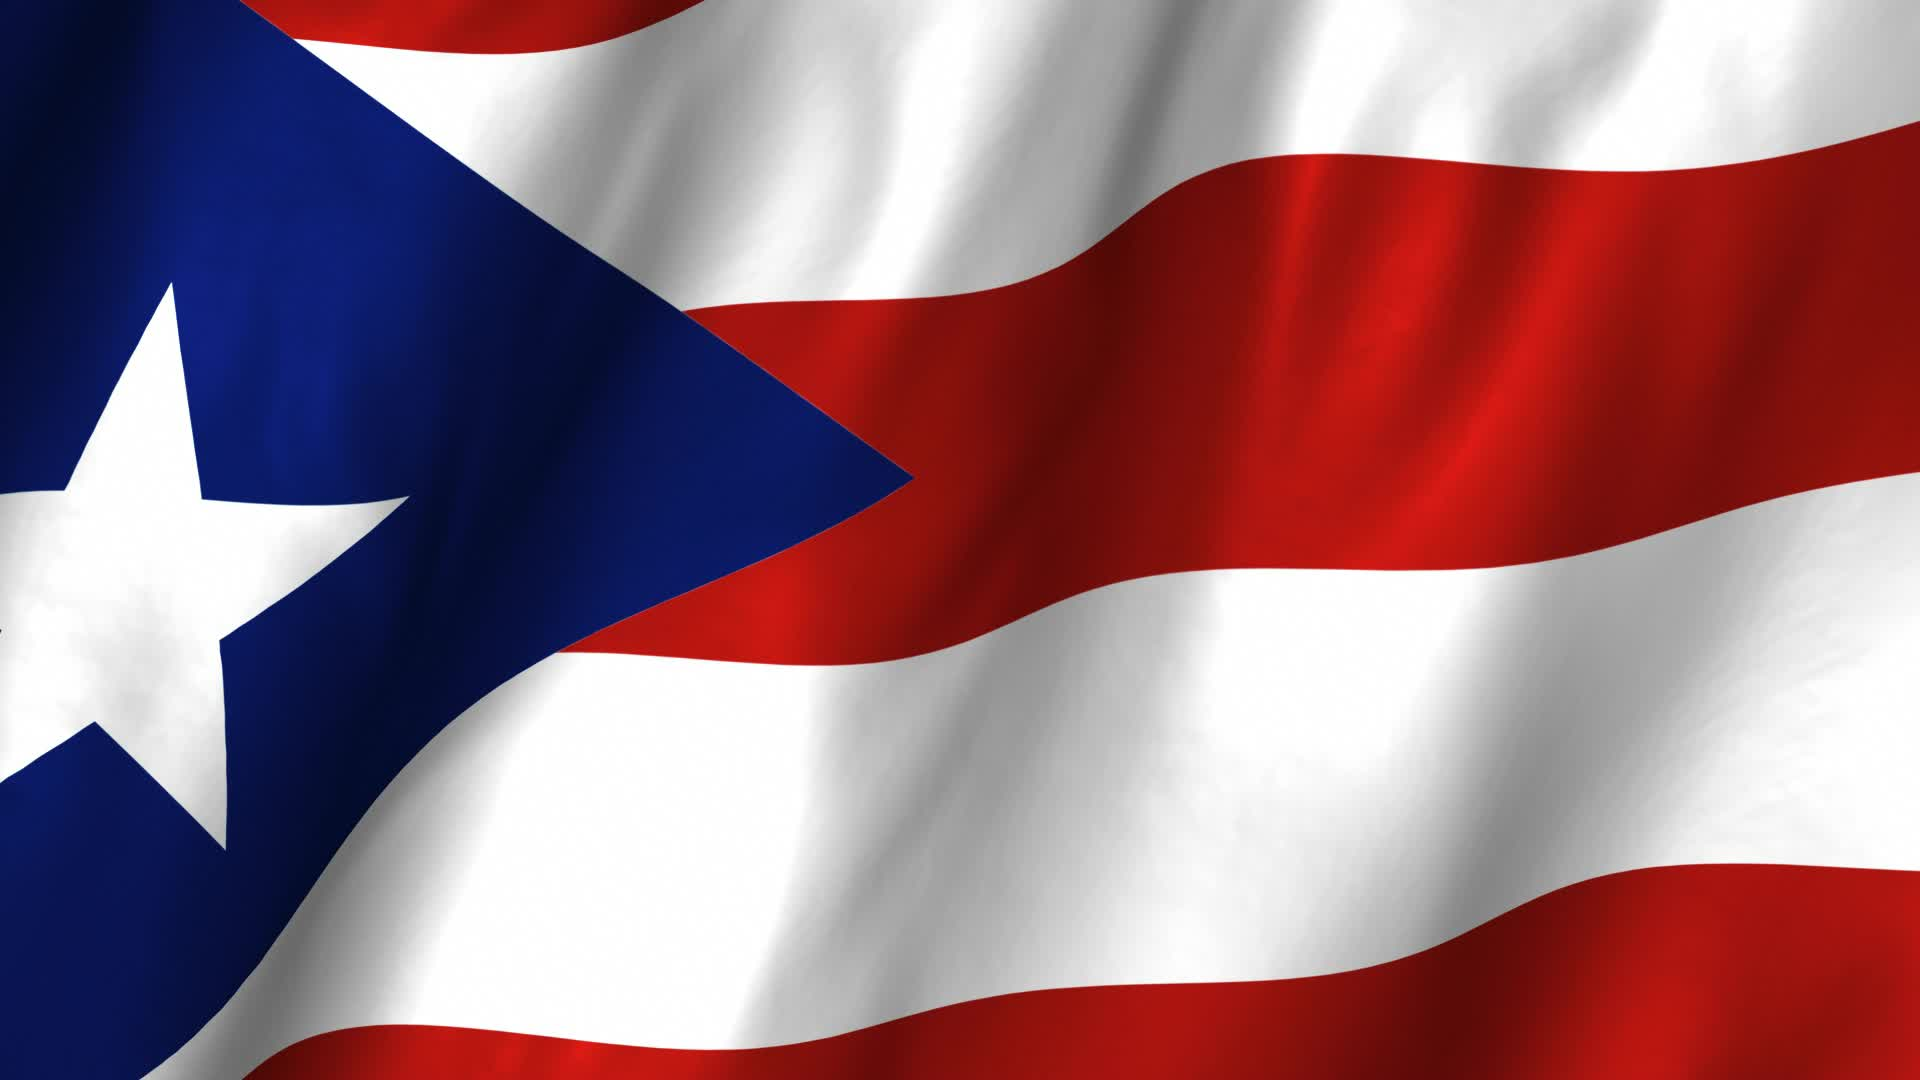 File:PR flag island.svg - Wikimedia Commons